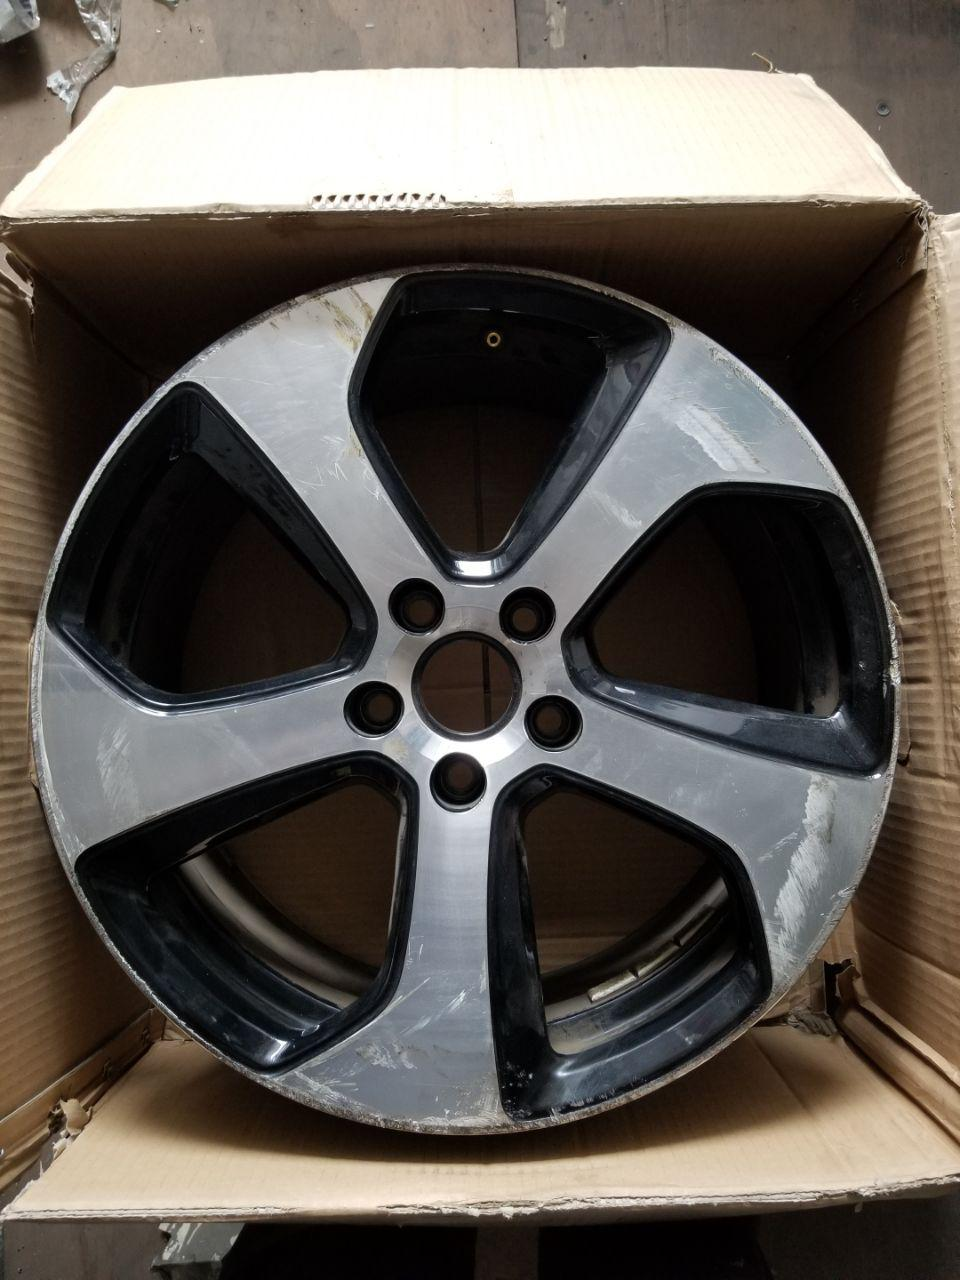 - OEM WHEELS - 2014-2018 VW GOLF 18x7.5 5 SPOKE Hollander #69980 /  USED